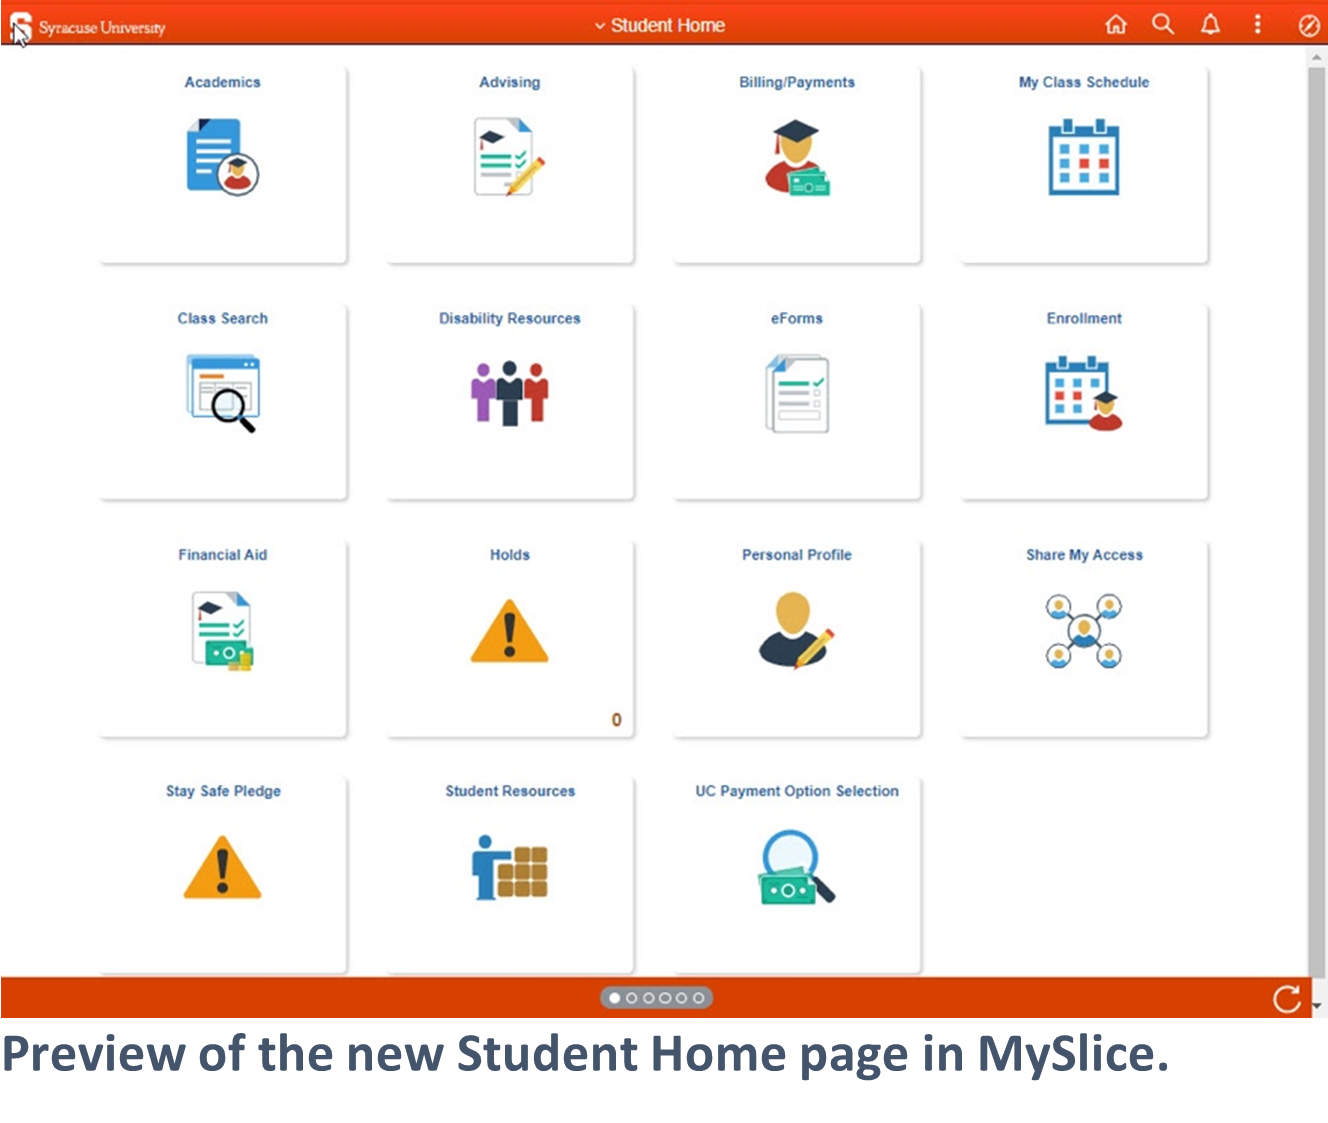 Preview of the new Student Home page in MySlice with 15 different tiles